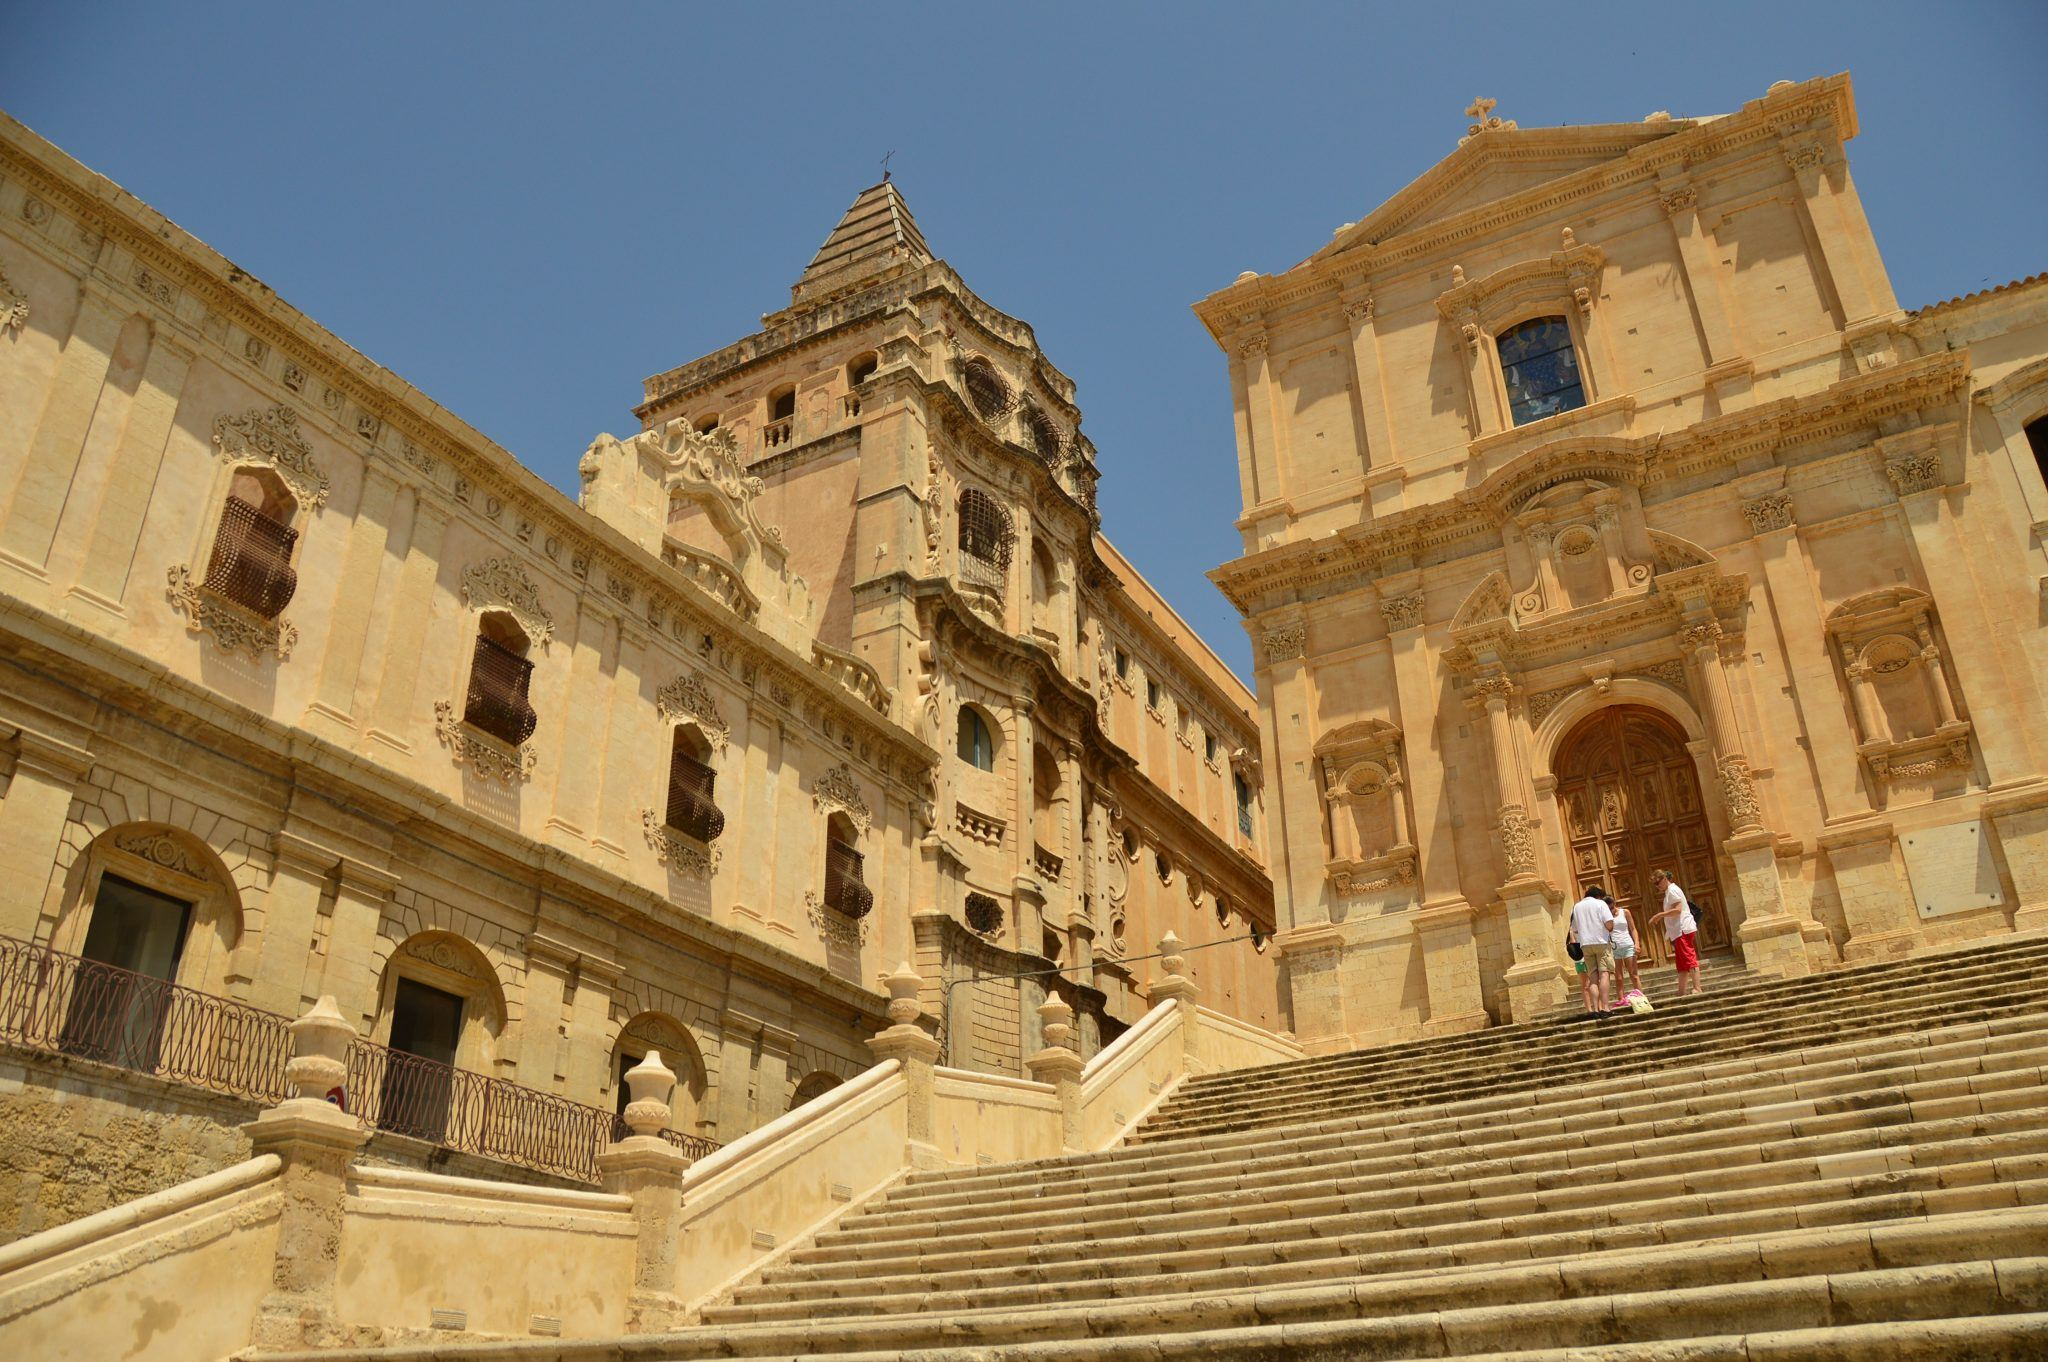 stairs leading up to a church in Noto